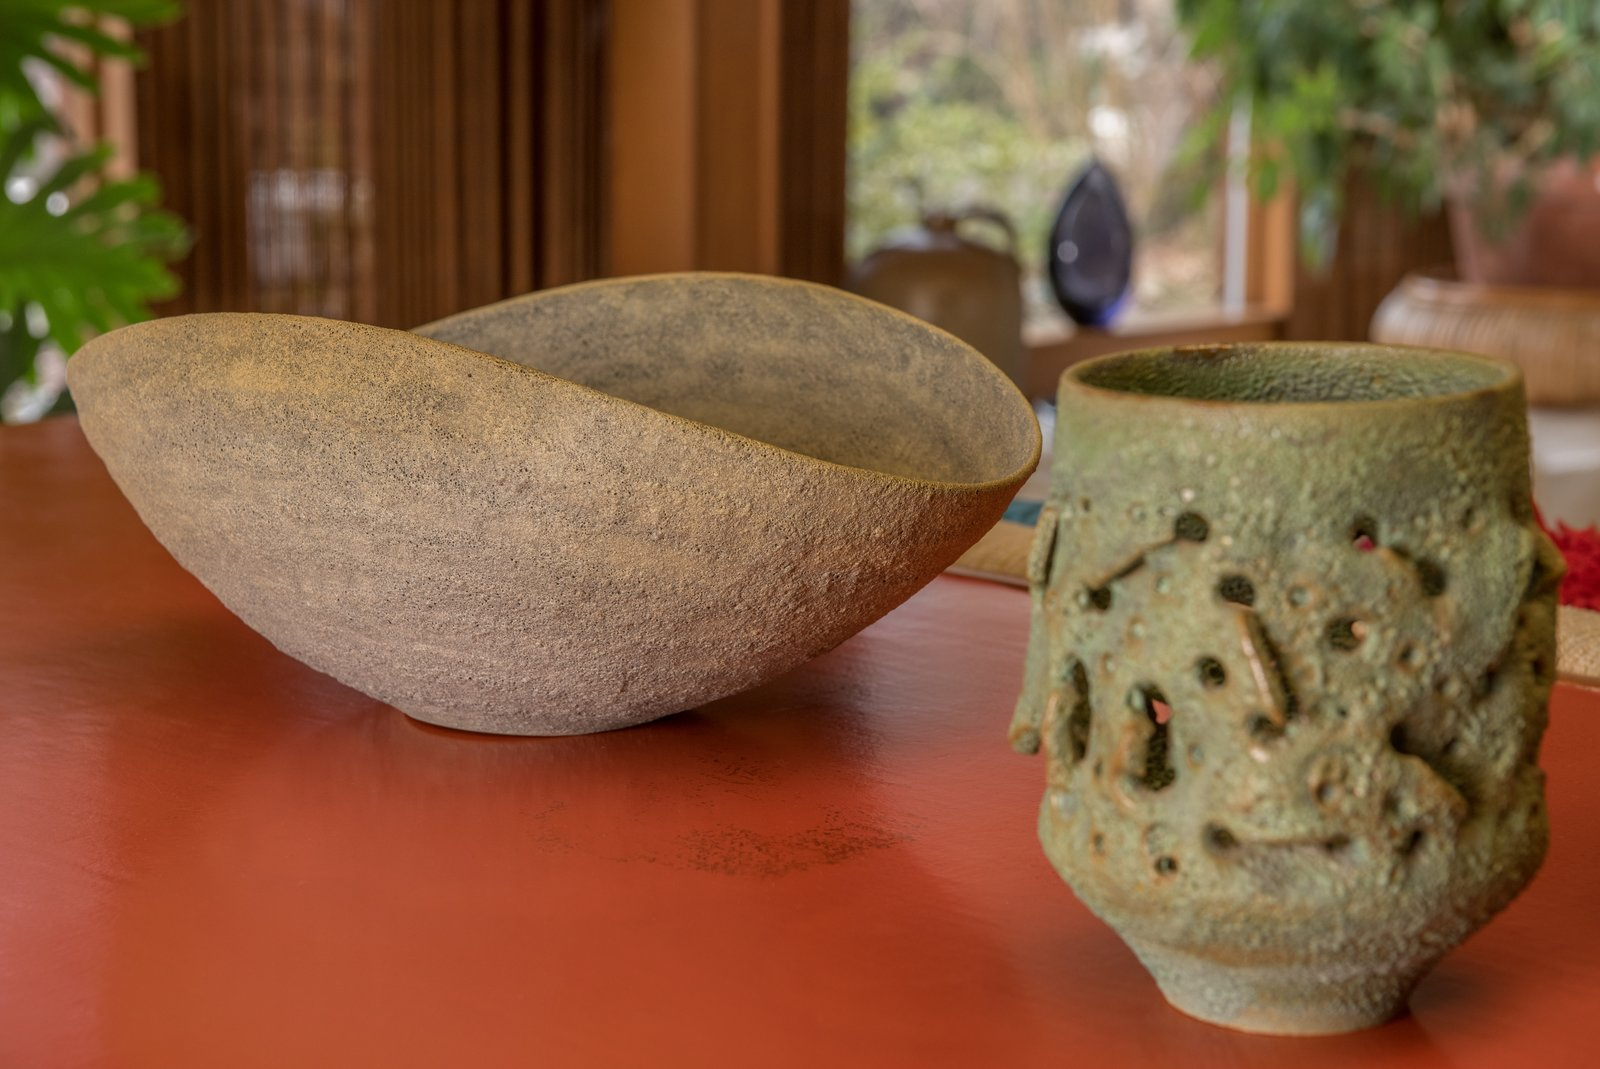 TK pieces of pottery by the Natzlers can be found throughout the Dow residence.